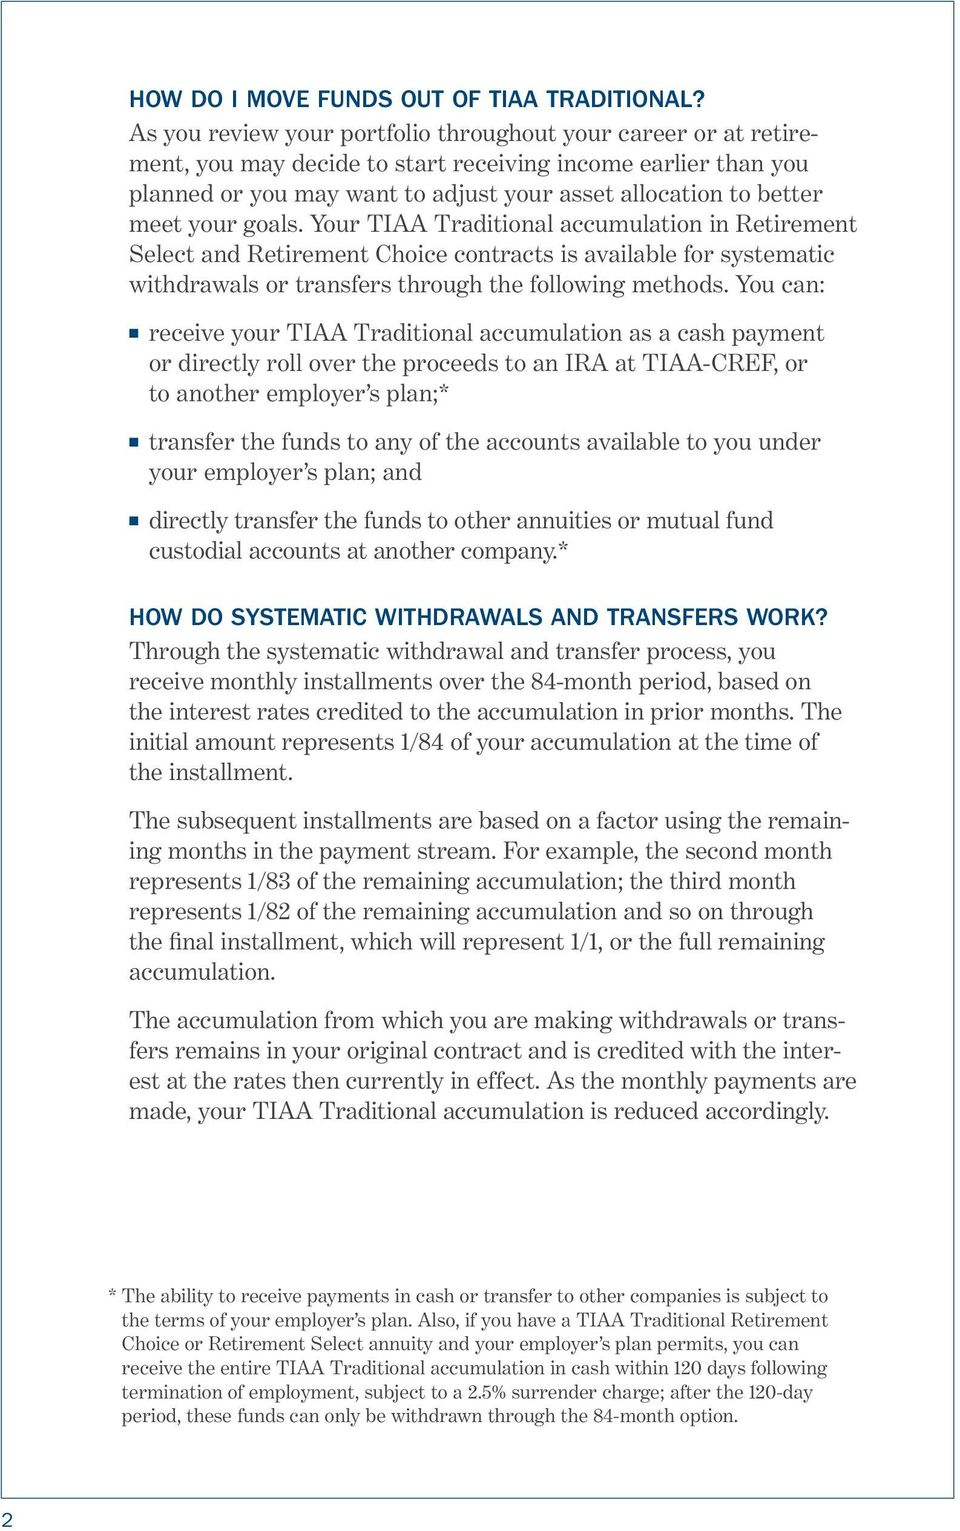 your goals. Your TIAA Traditional accumulation in Retirement Select and Retirement Choice contracts is available for systematic withdrawals or transfers through the following methods.